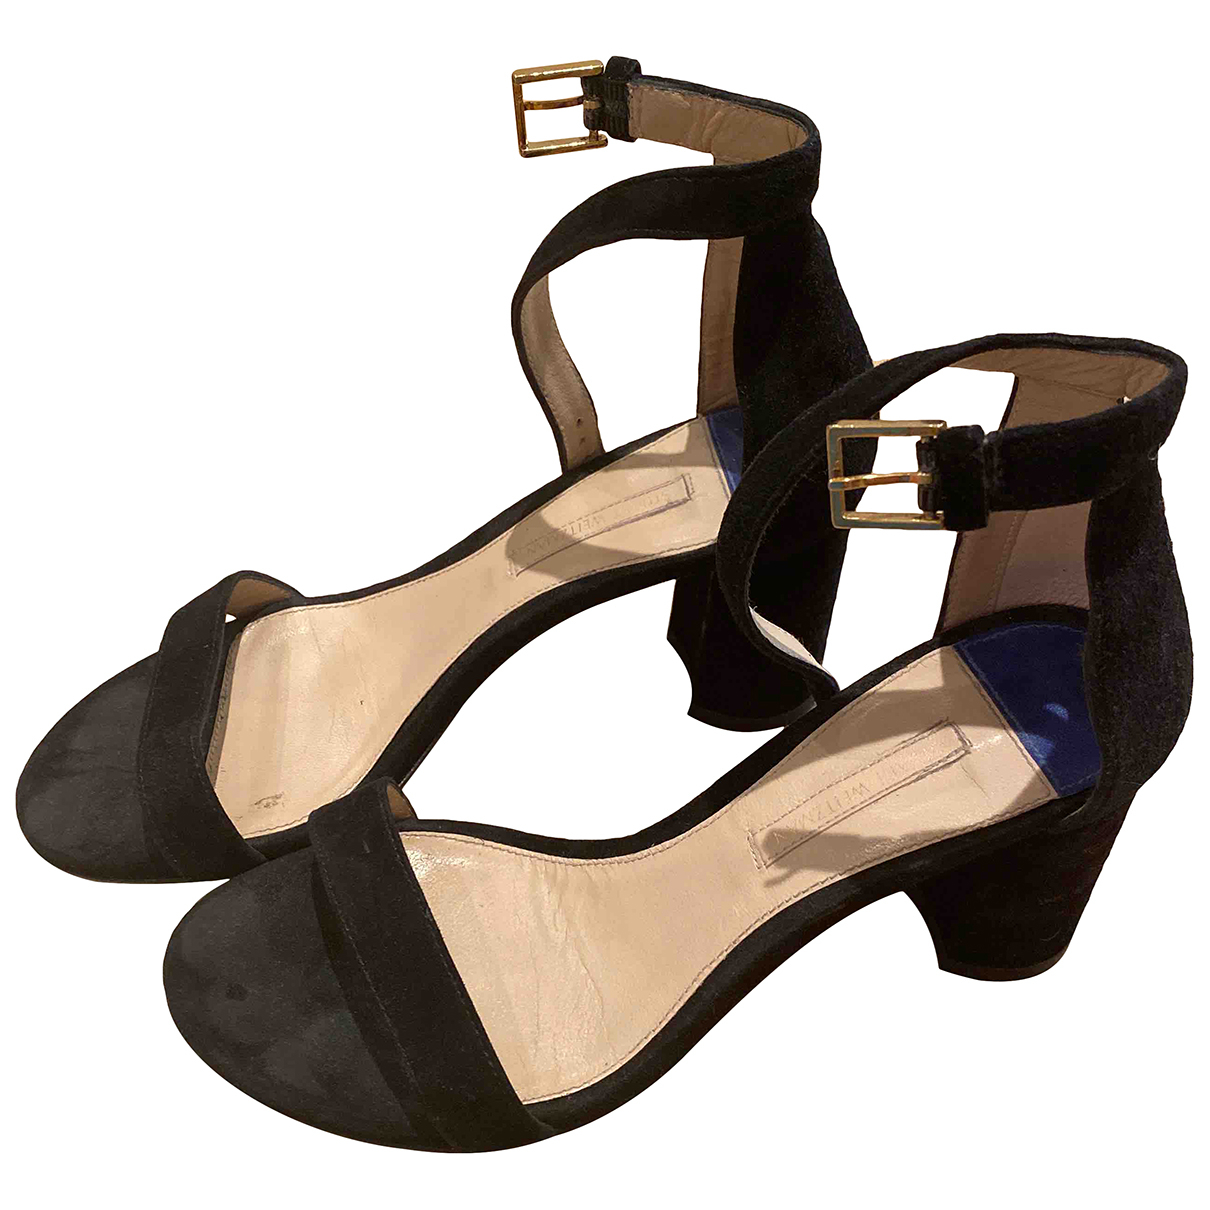 Stuart Weitzman N Black Suede Heels for Women 36 EU